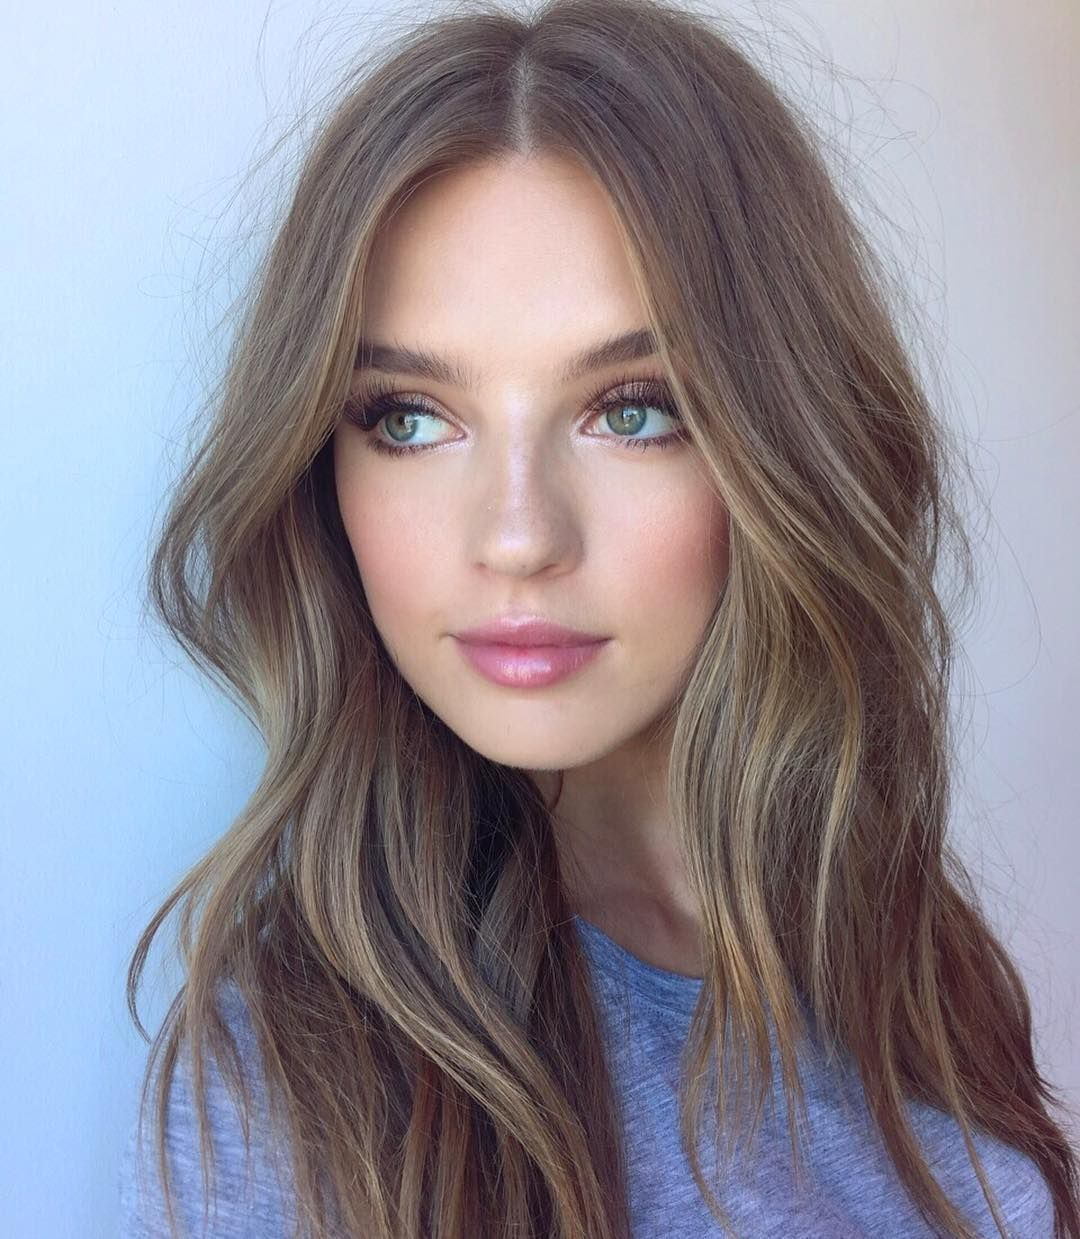 Achieve fresh faced makeup with a shimmer eyeshadow in the inner